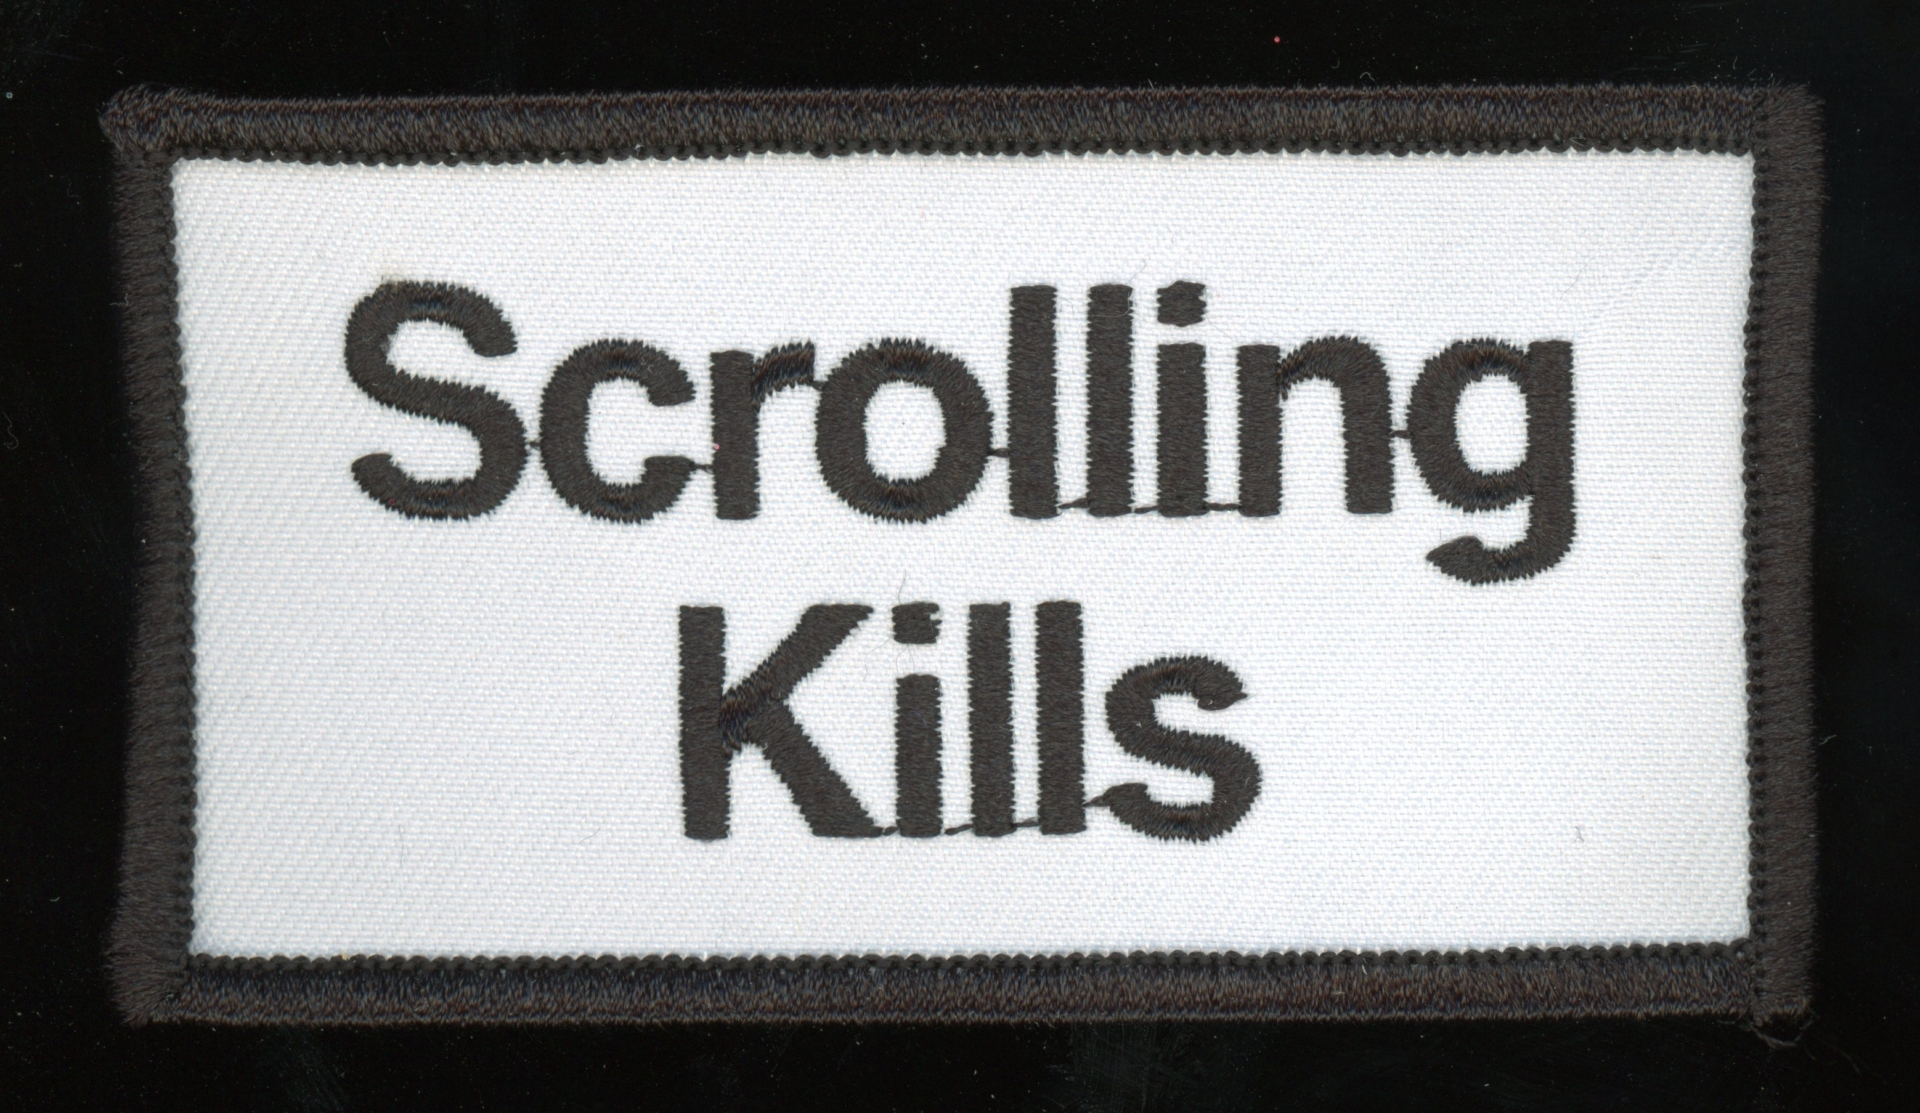 TXTbooks Scrolling Kills (Patch) – Kurt Woerpel